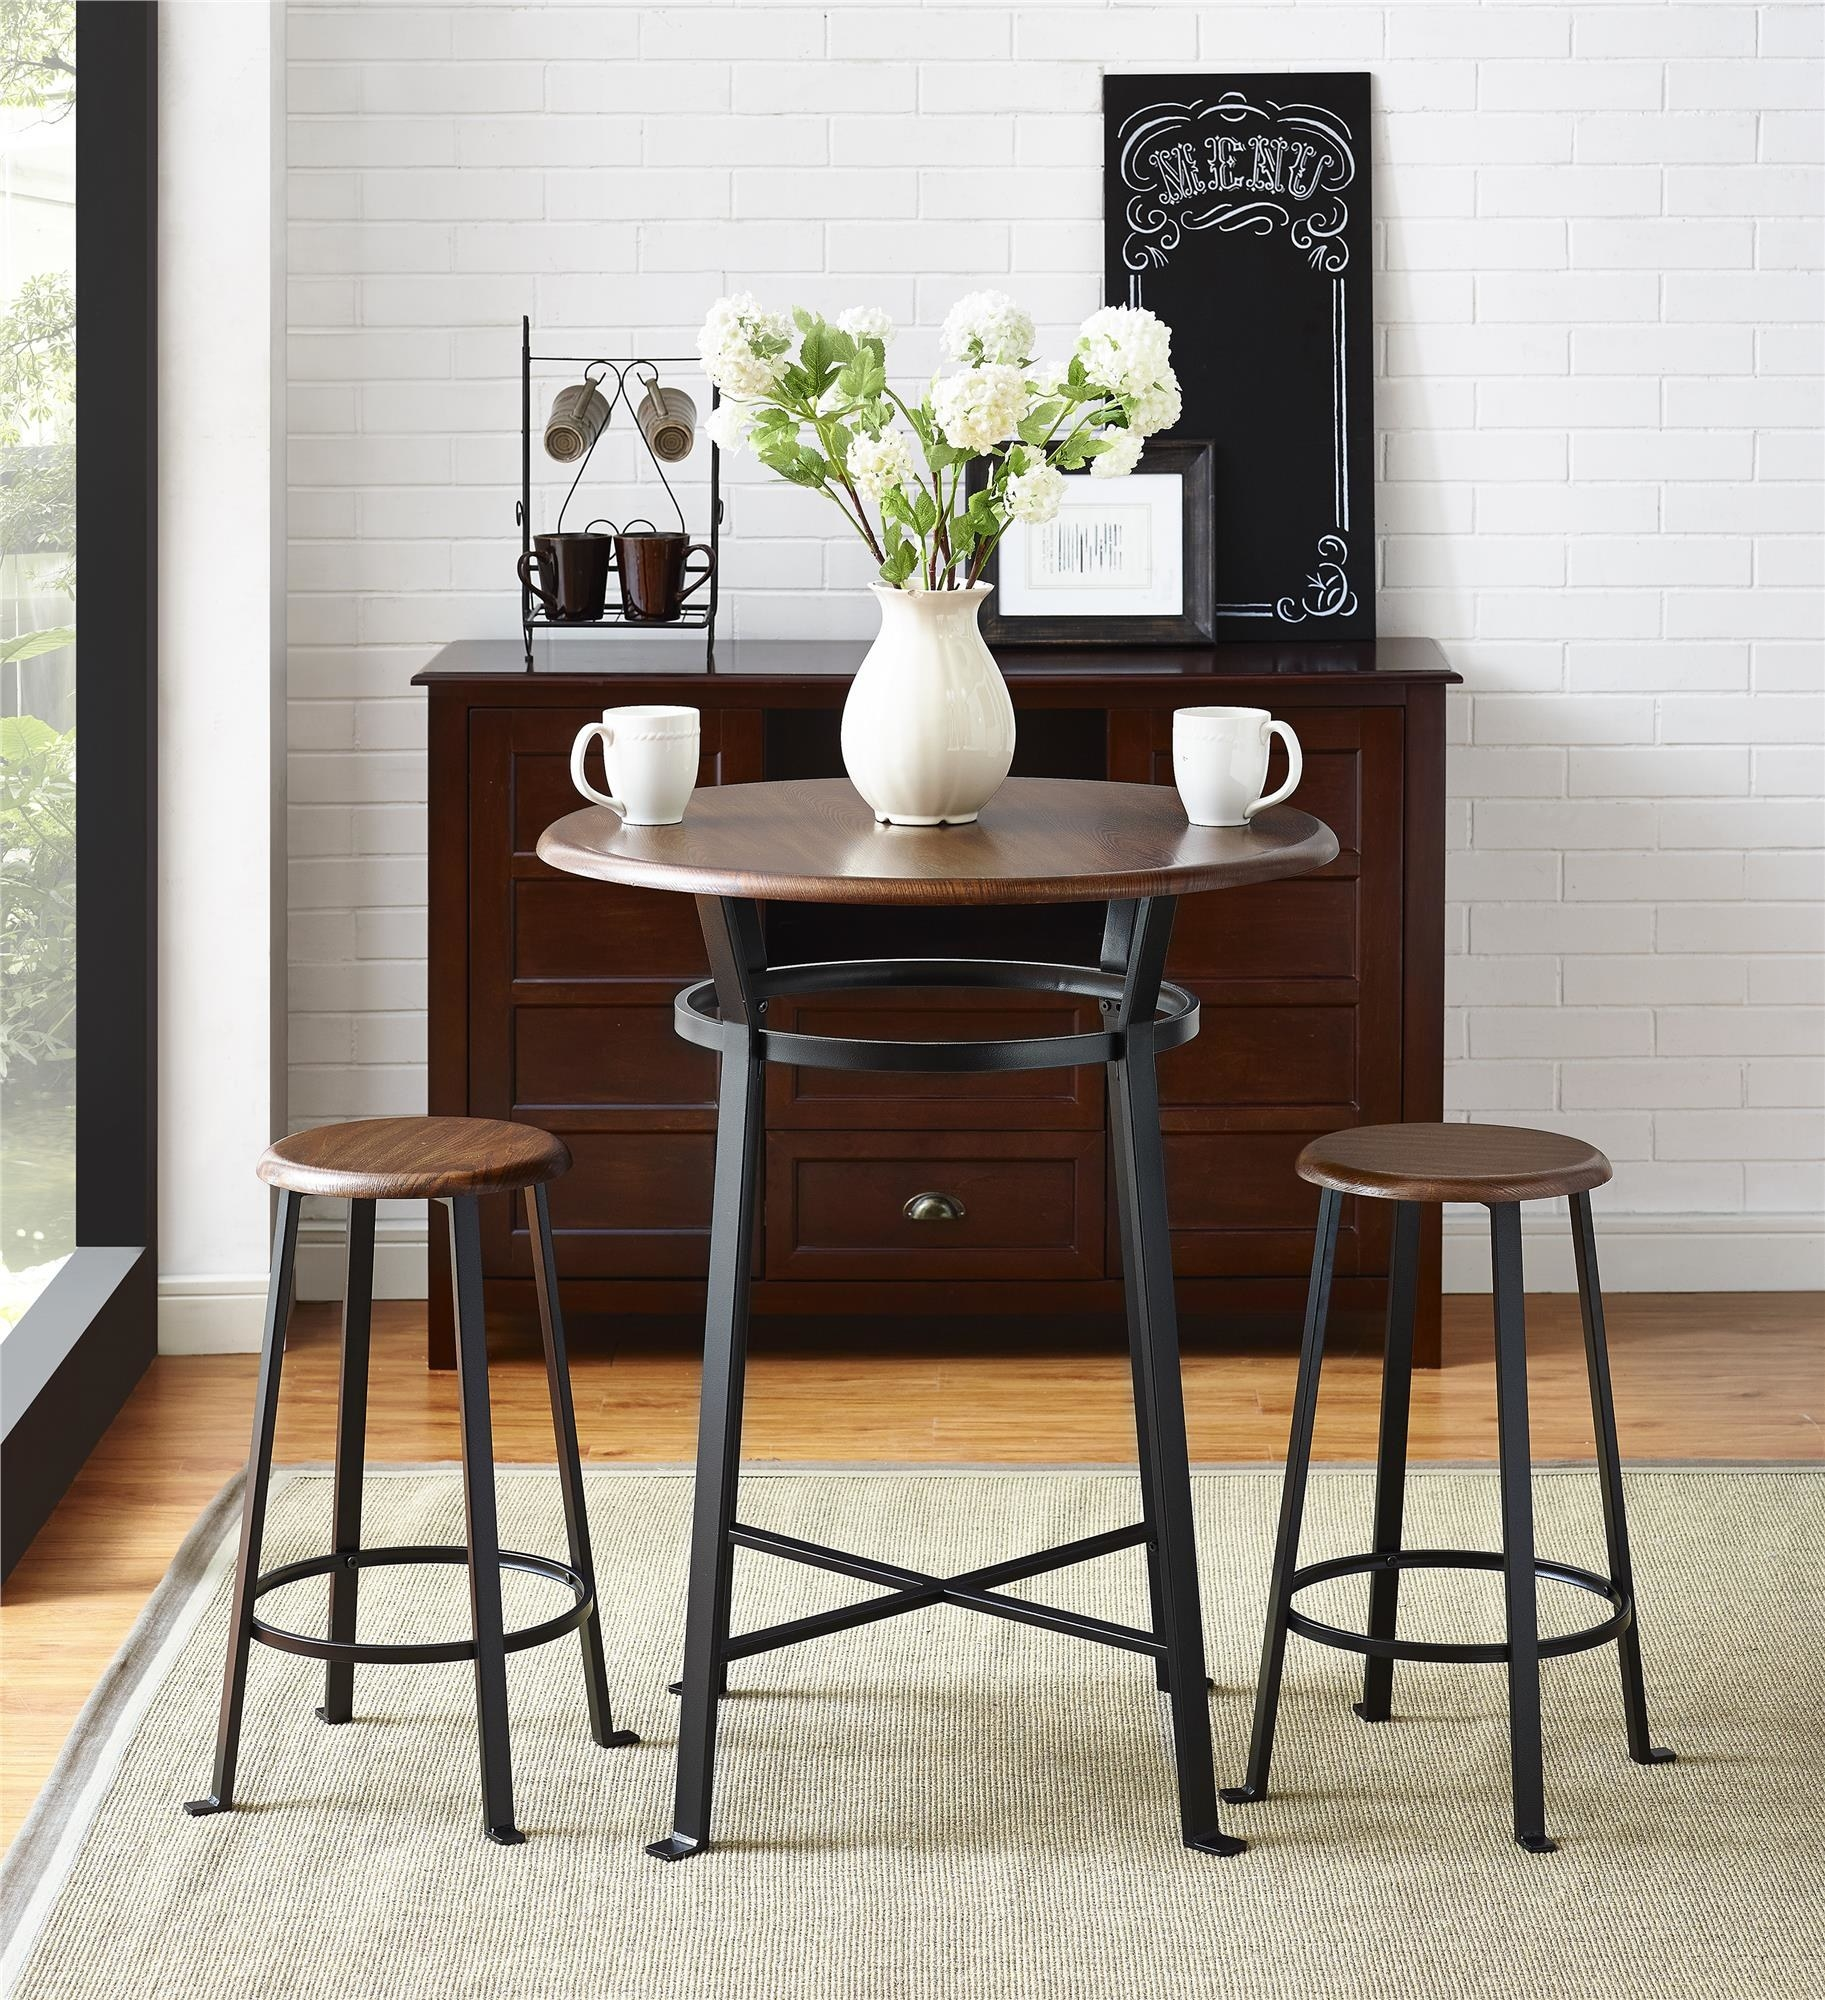 The black and brown table and chairs